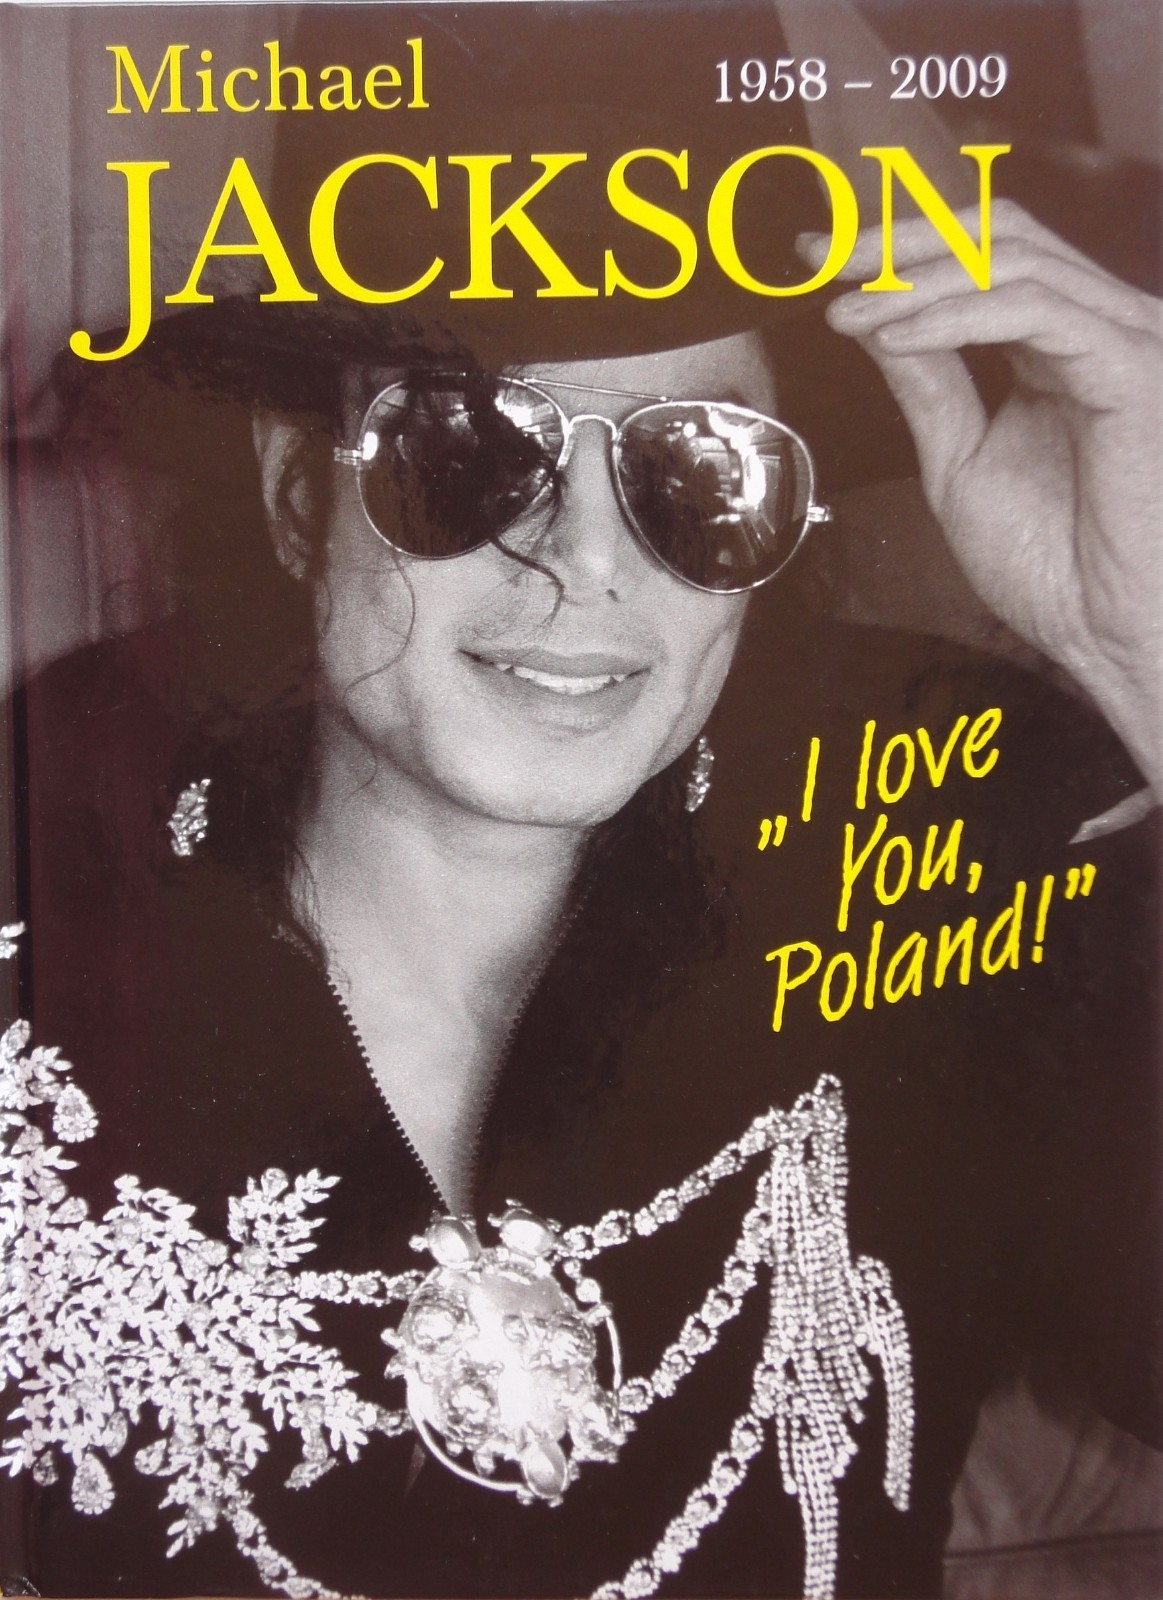 A Book Pertaining To Michael Jackson